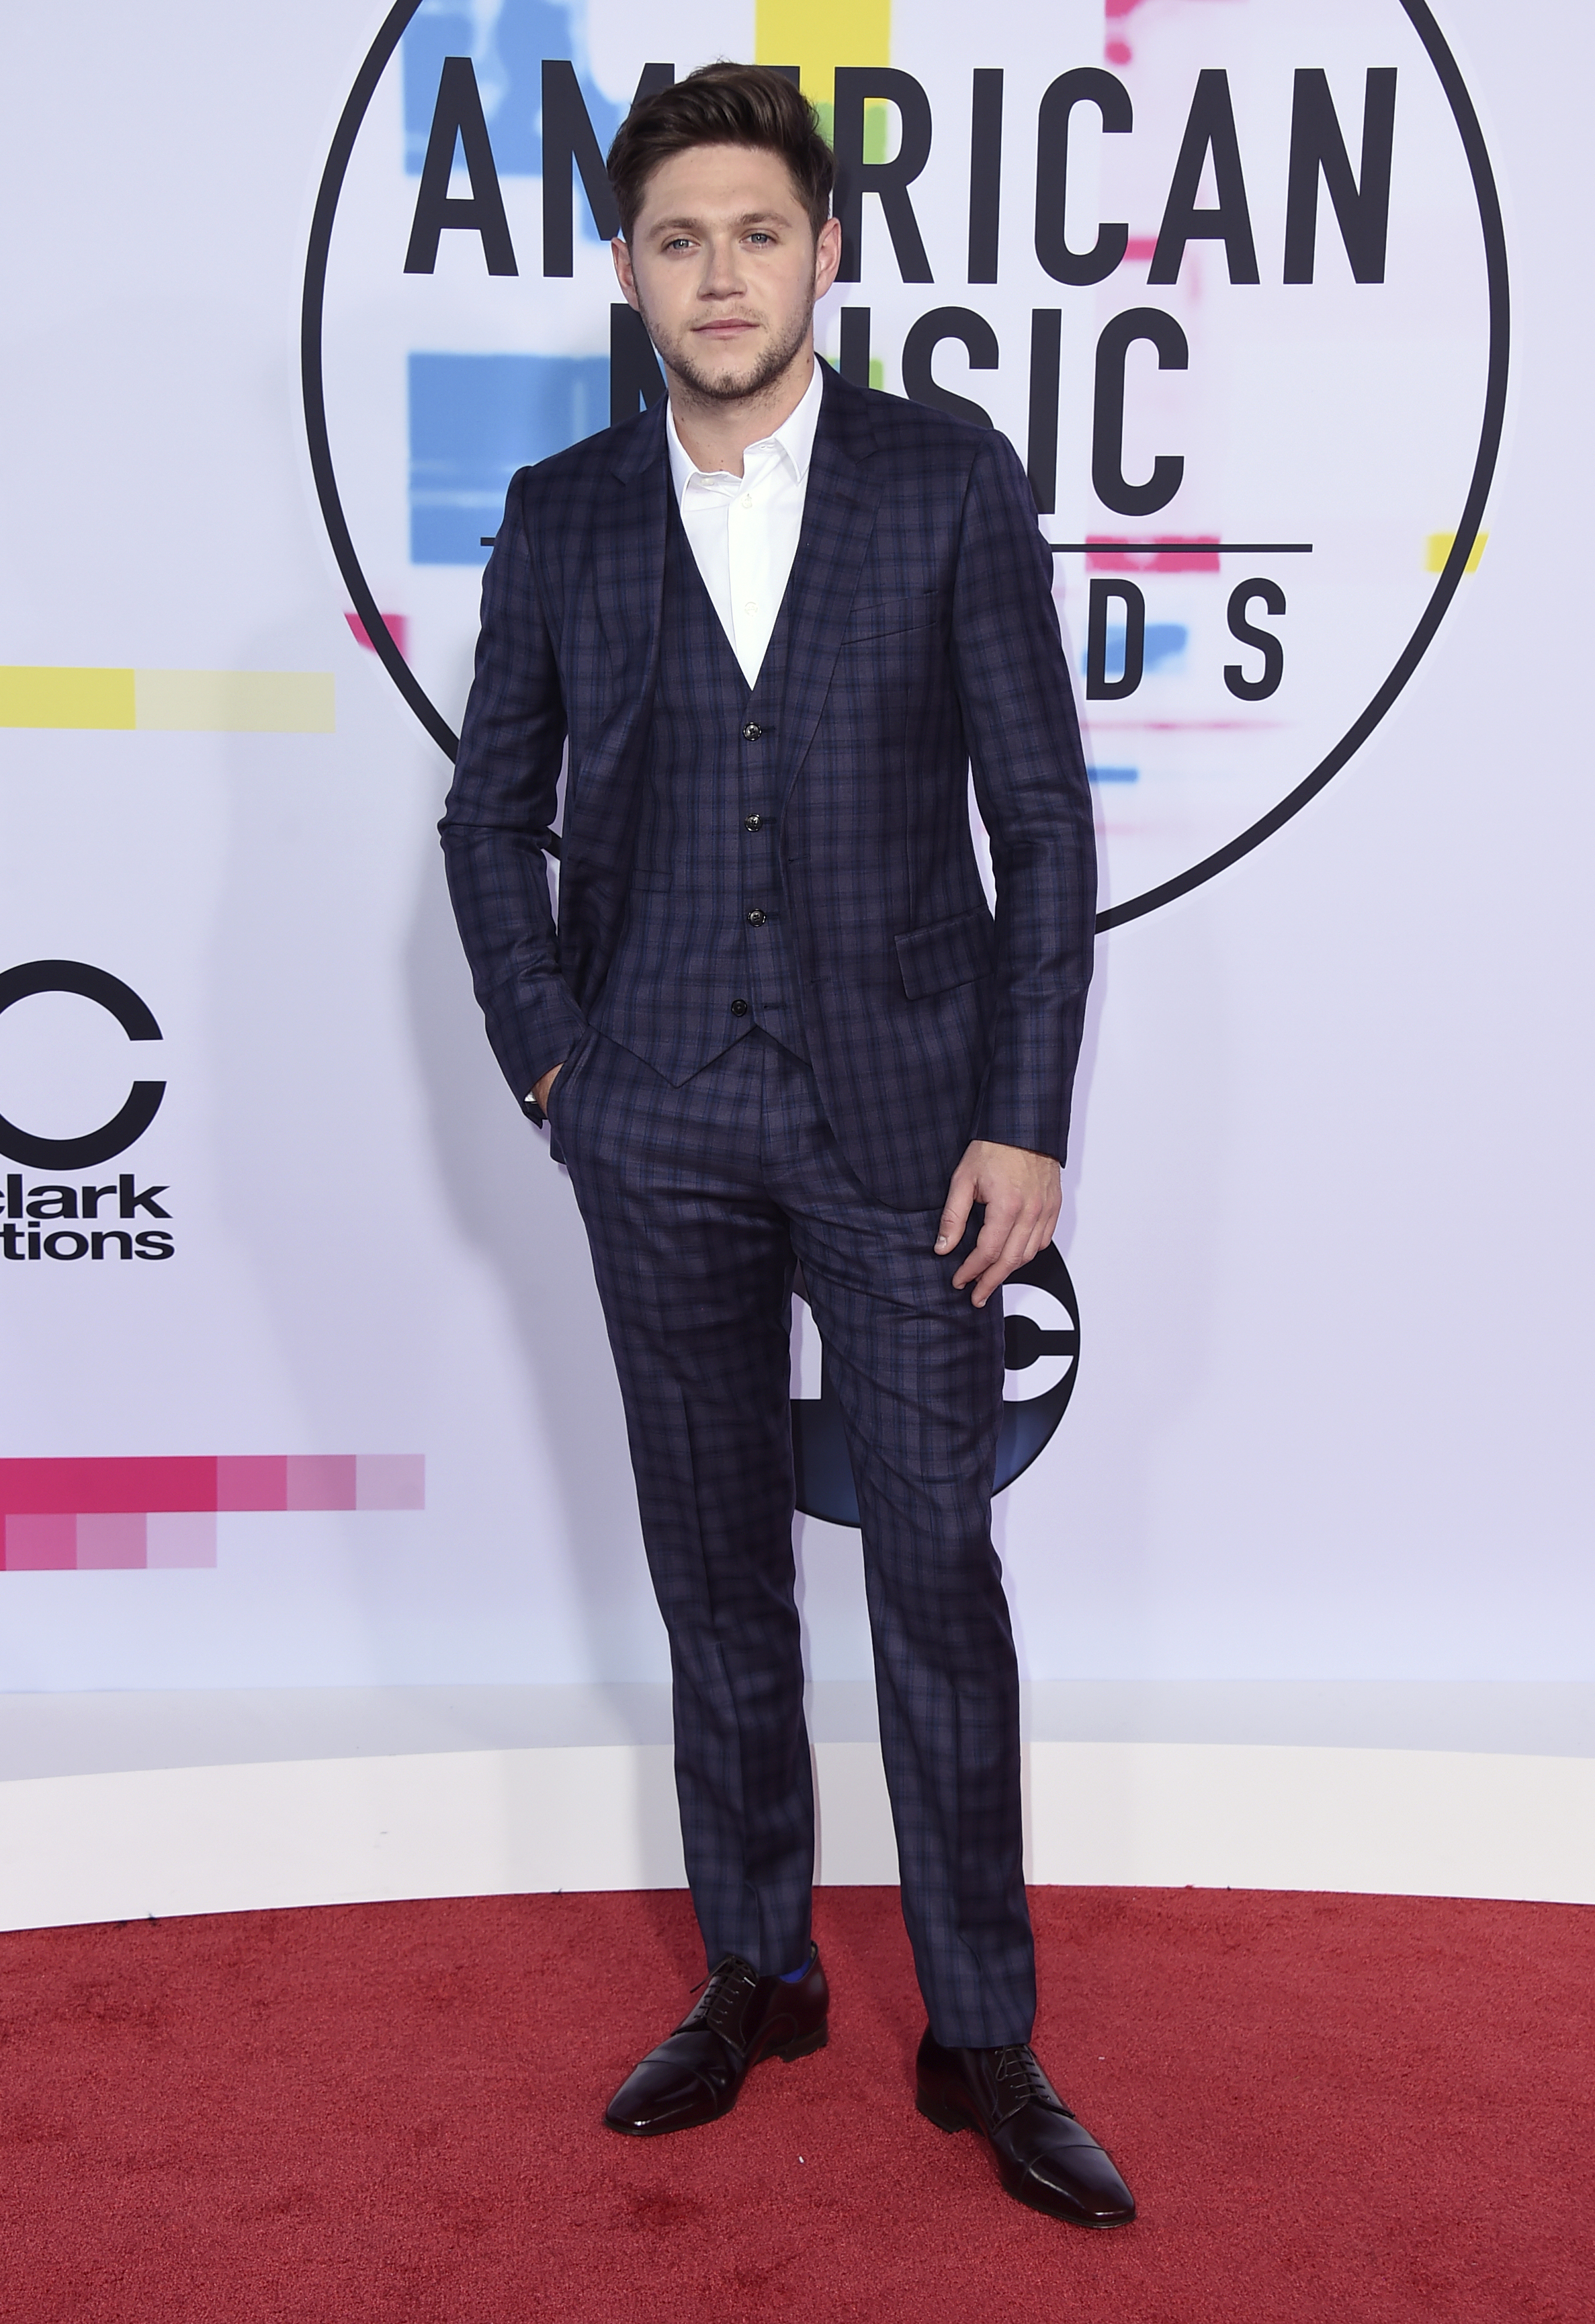 <div class='meta'><div class='origin-logo' data-origin='none'></div><span class='caption-text' data-credit='Jordan Strauss/Invision/AP'>Niall Horan arrives at the American Music Awards at the Microsoft Theater on Sunday, Nov. 19, 2017, in Los Angeles.</span></div>